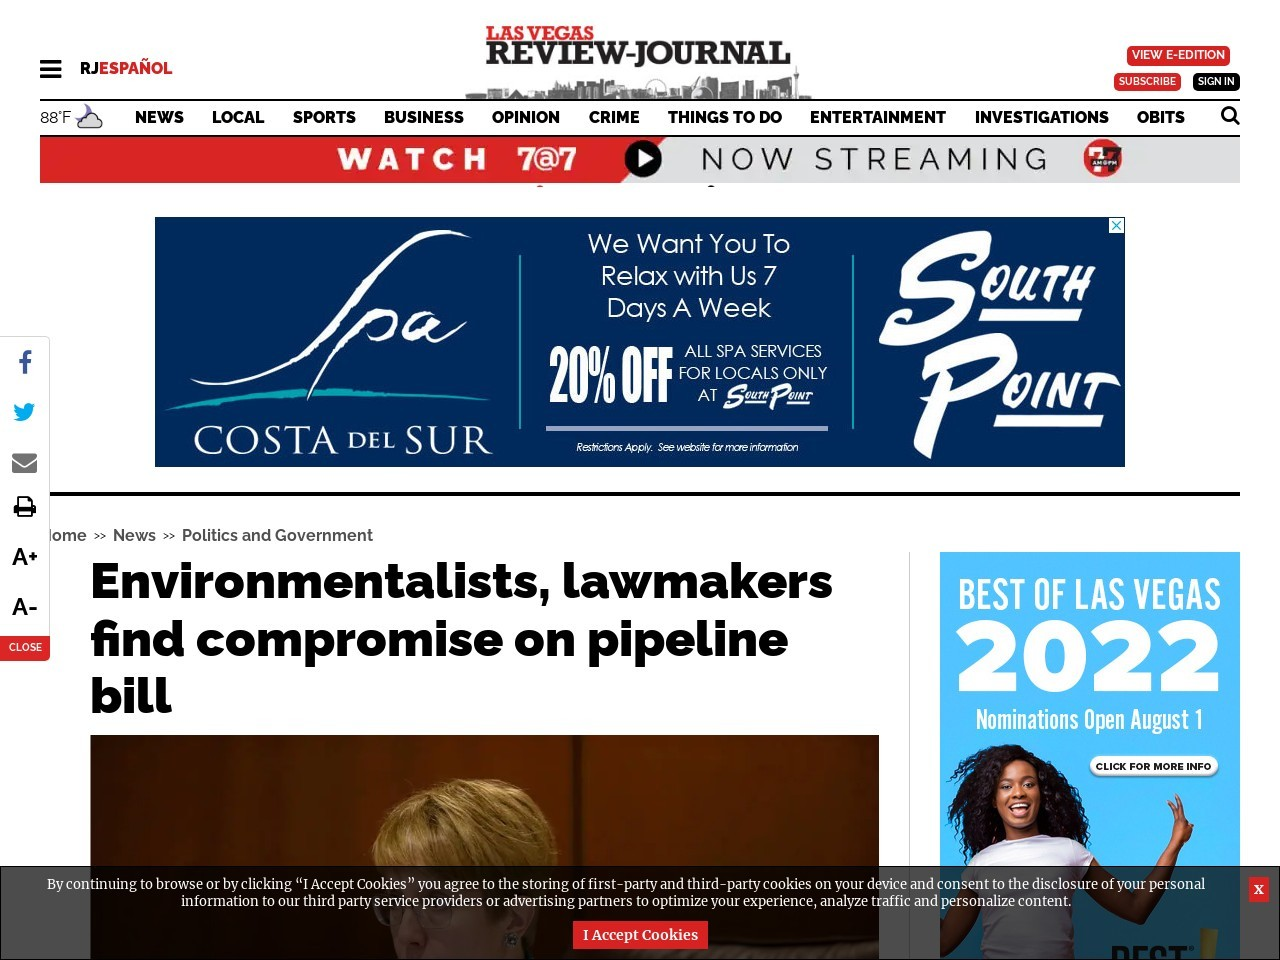 Environmentalists, lawmakers find compromise on pipeline bill